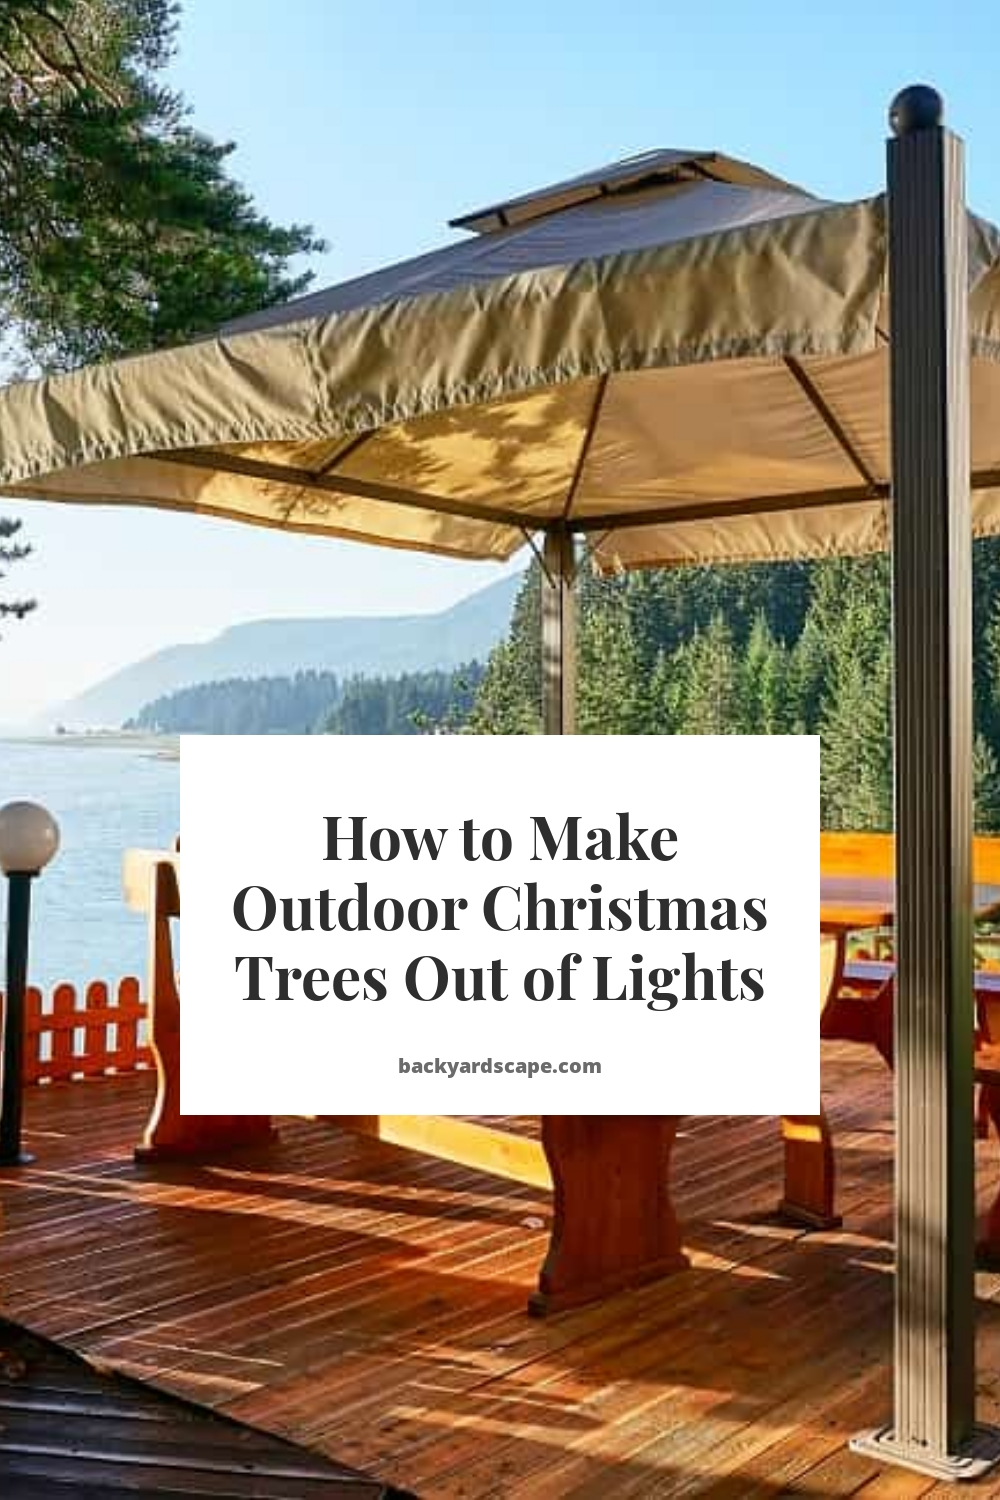 How to Make Outdoor Christmas Trees Out of Lights